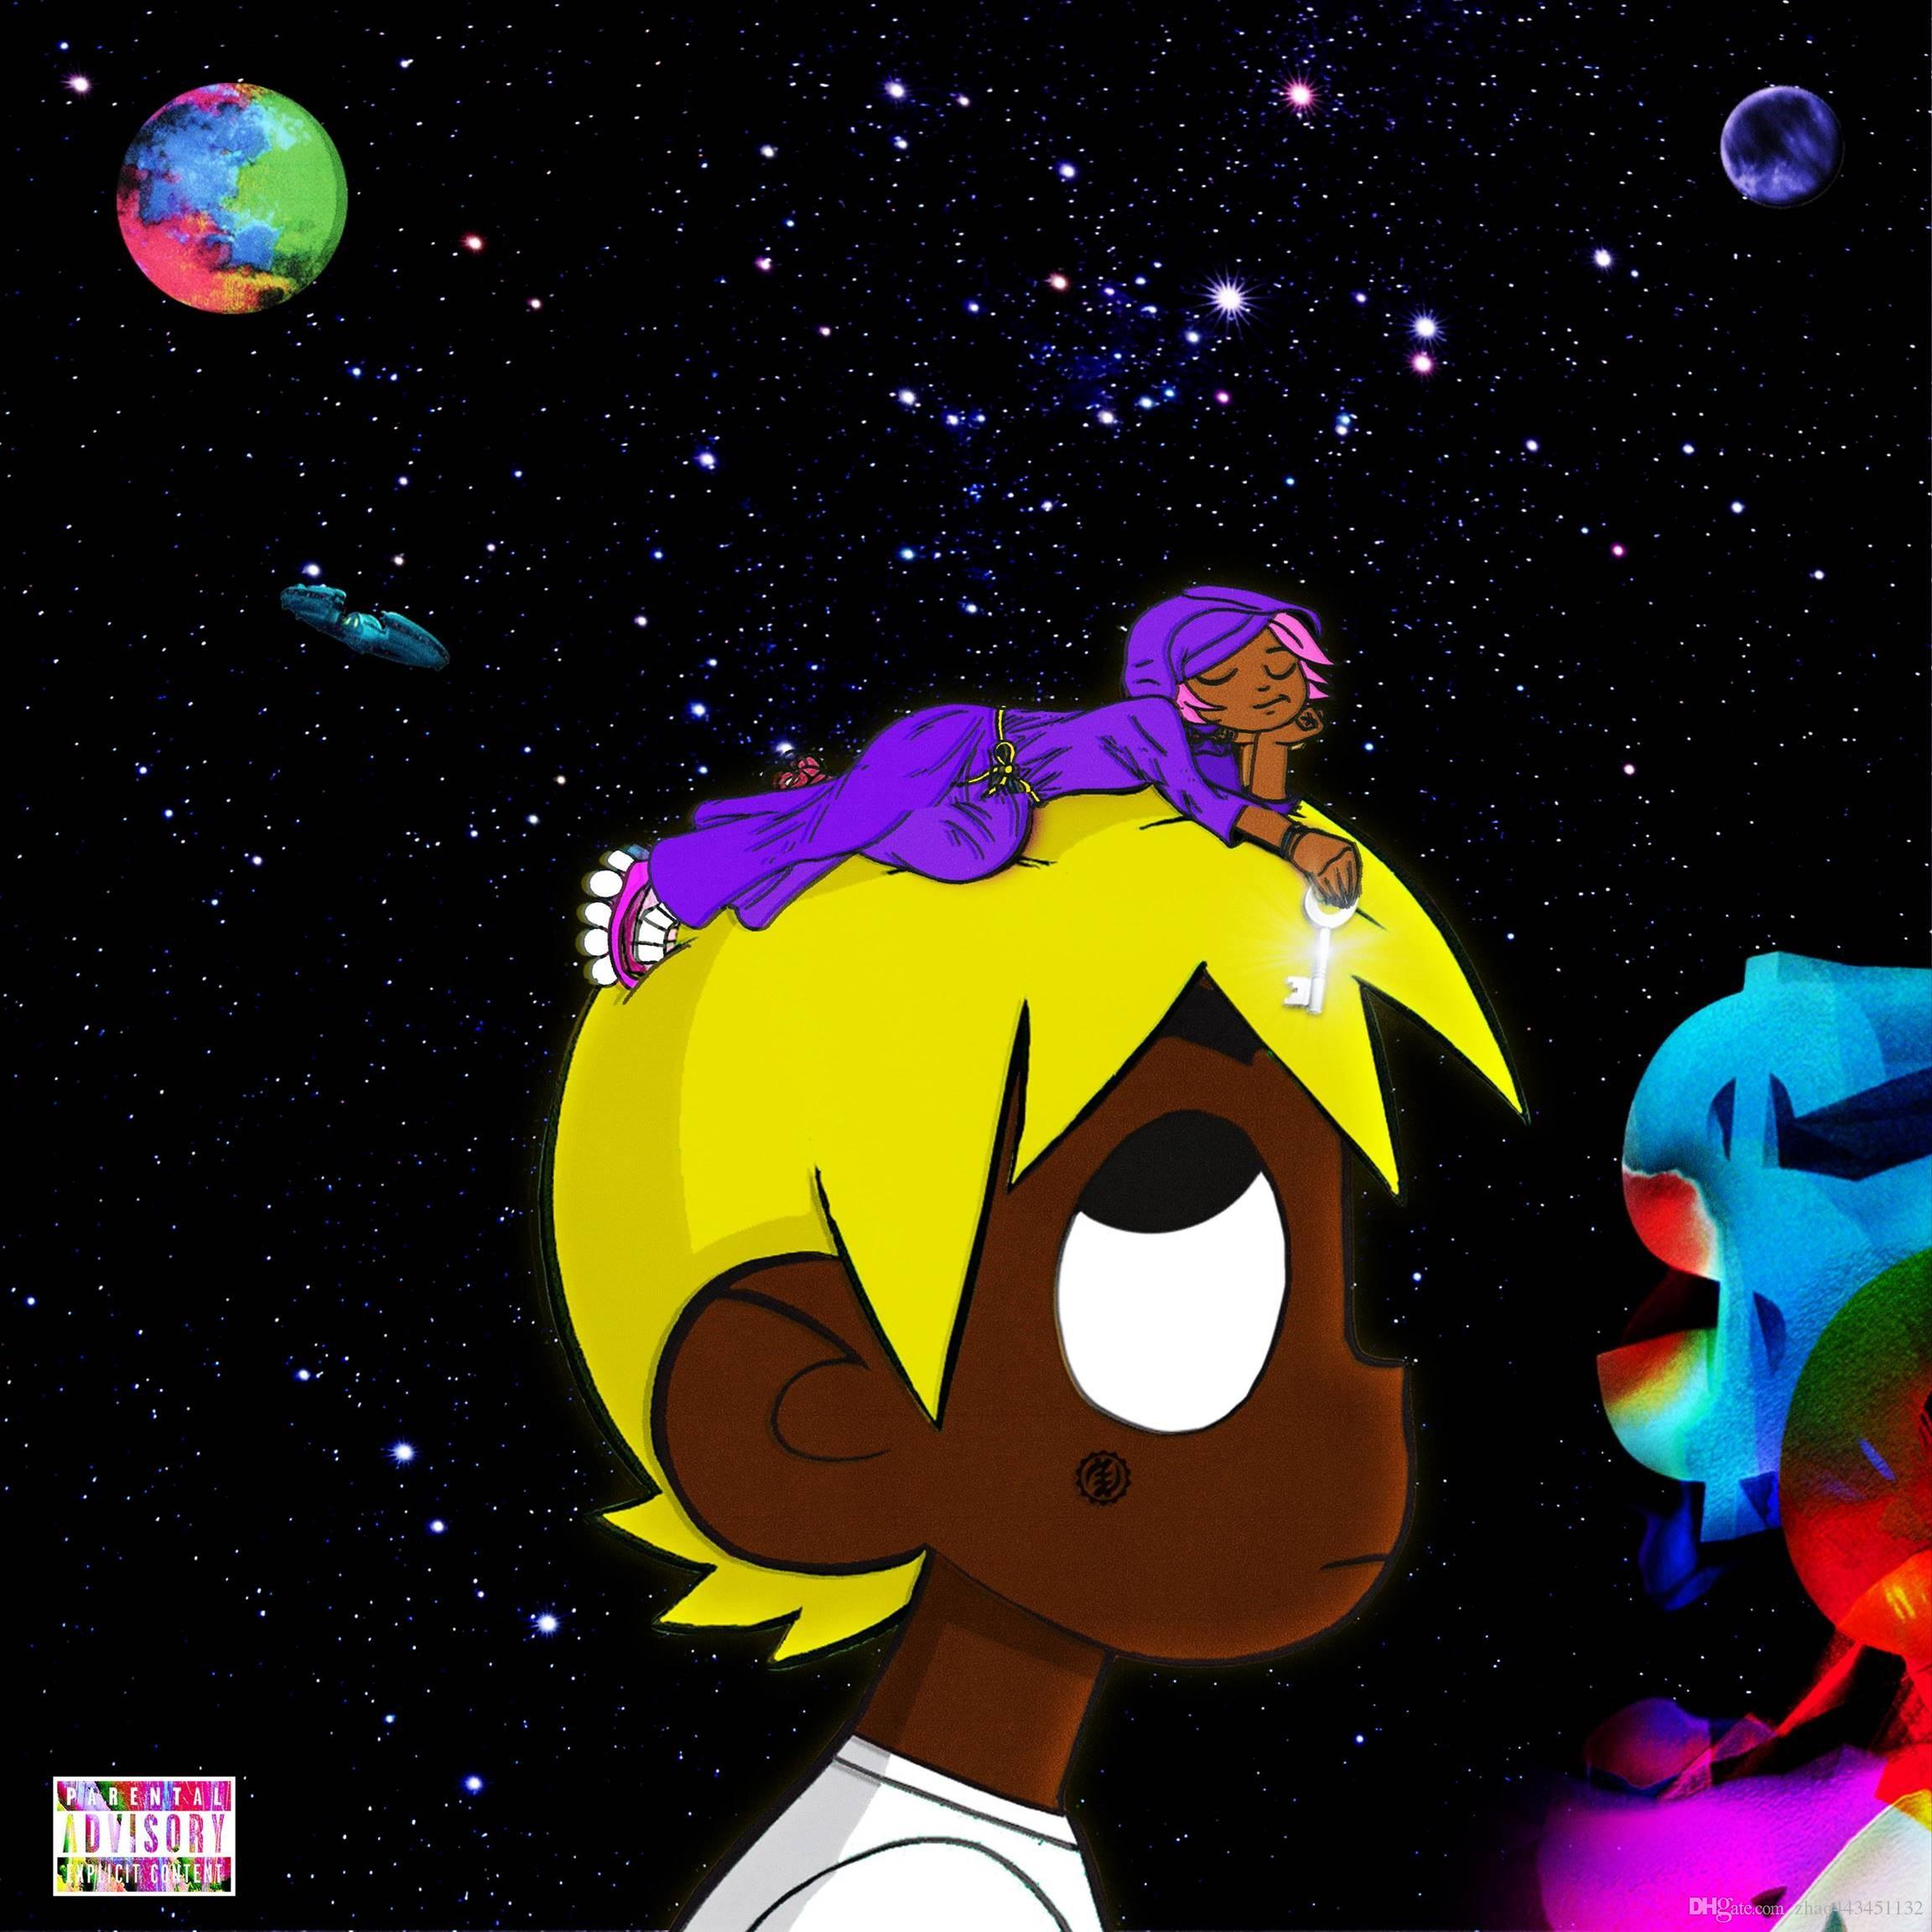 Lil Uzi Vert Luv Vs The World 2 Album Cover Poster Rap Music Artist Print Desktop High Resolution Wallpaper Desktop High Resolution Wallpapers From Zhao443451132 6 44 Dhgate Com